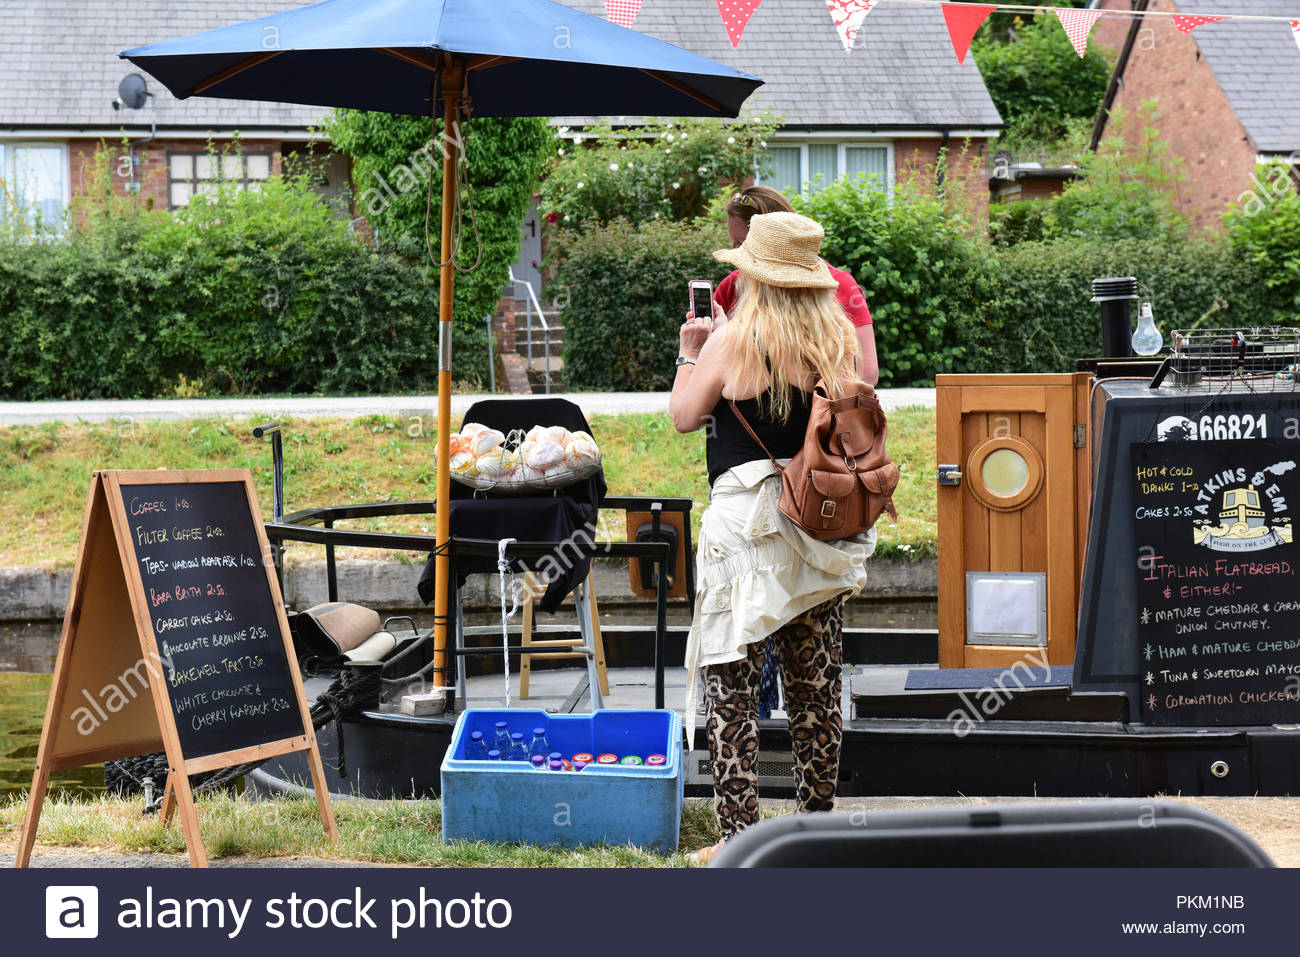 Blonde woman taking pictures of a floating cafe on the canal close to Llangollen, Wales. - Stock Image